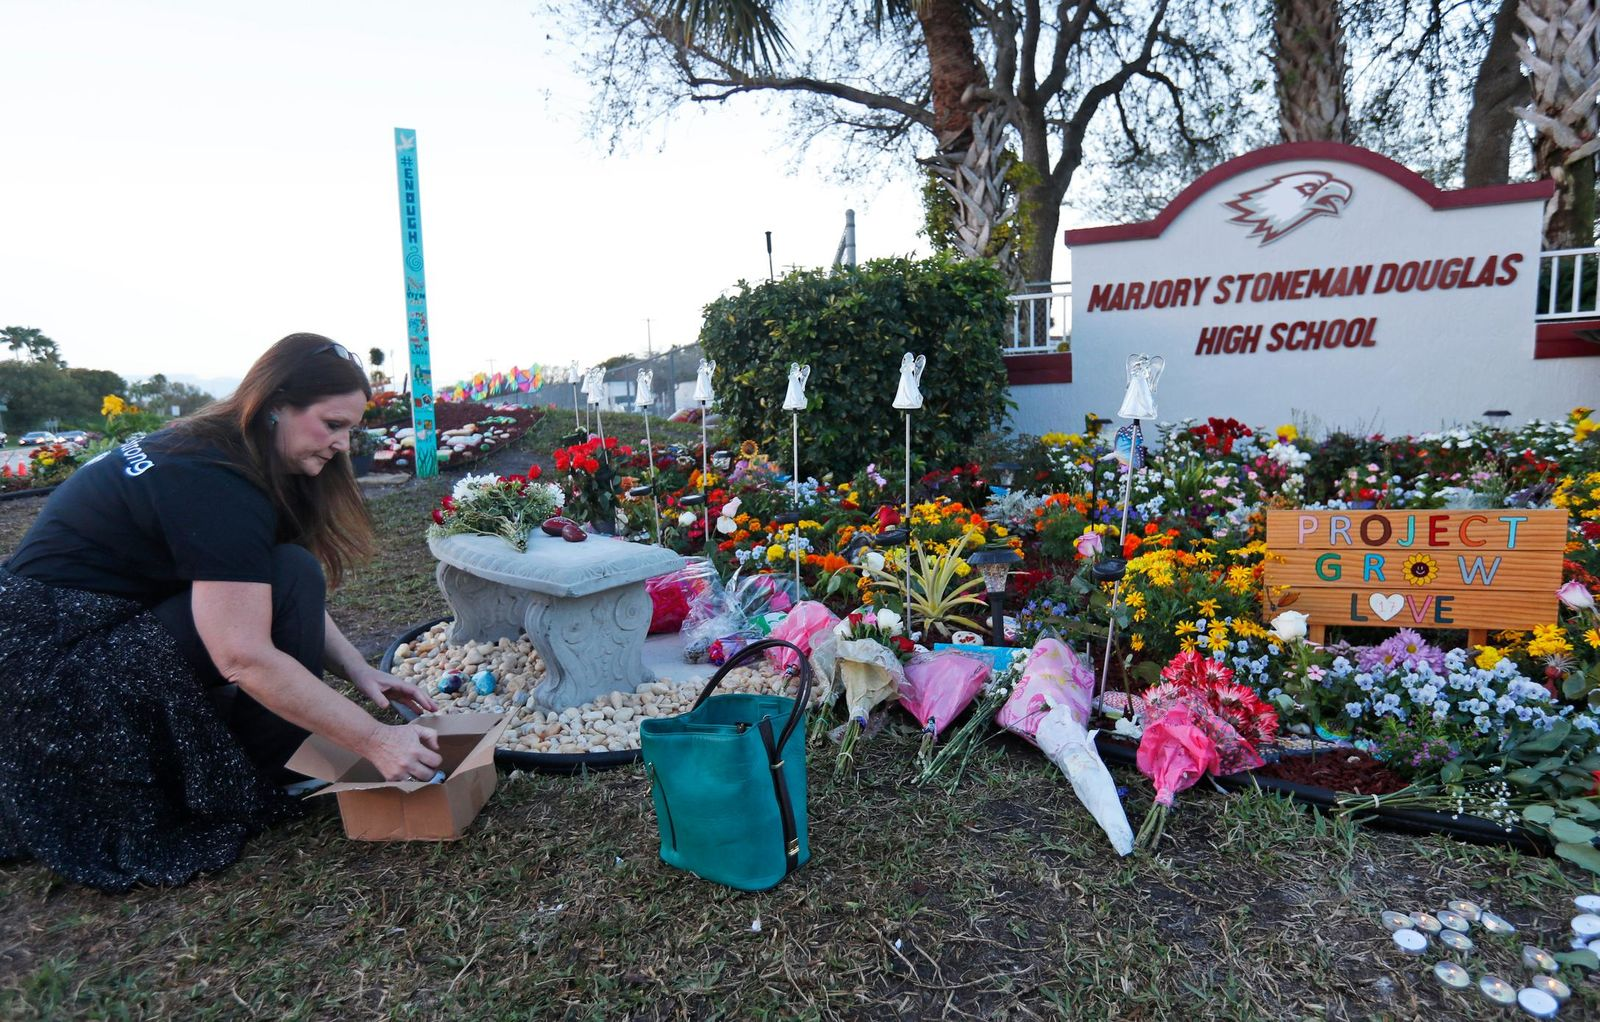 Suzanne Devine Clark, an art teacher at Deerfield Beach Elementary School, places painted stones at a memorial outside Marjory Stoneman Douglas High School during the one-year anniversary of the school shooting, Thursday, Feb. 14, 2019, in Parkland, Fla. A year ago on Thursday, 14 s